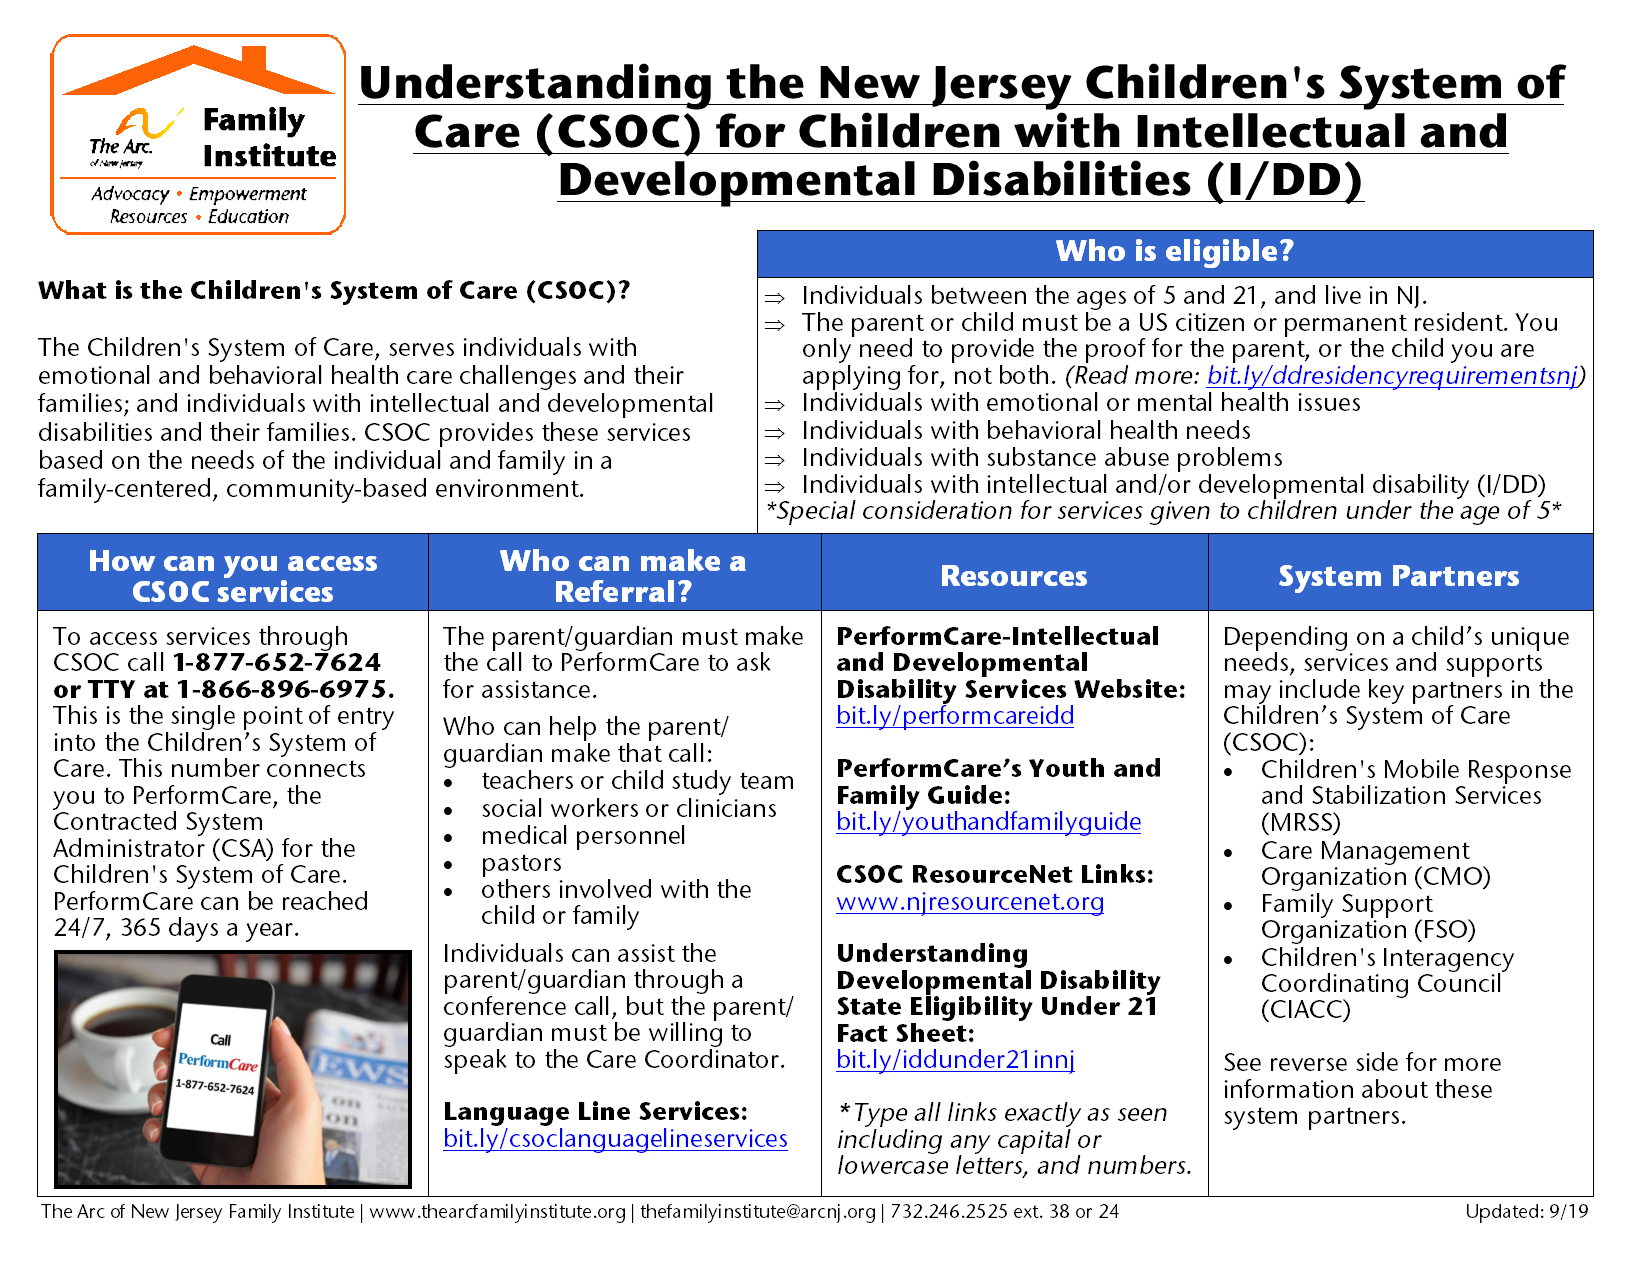 Understanding the New Jersey Children's System of Care (CSOC) for Children with Intellectual and Developmental Disabilities (I/DD)